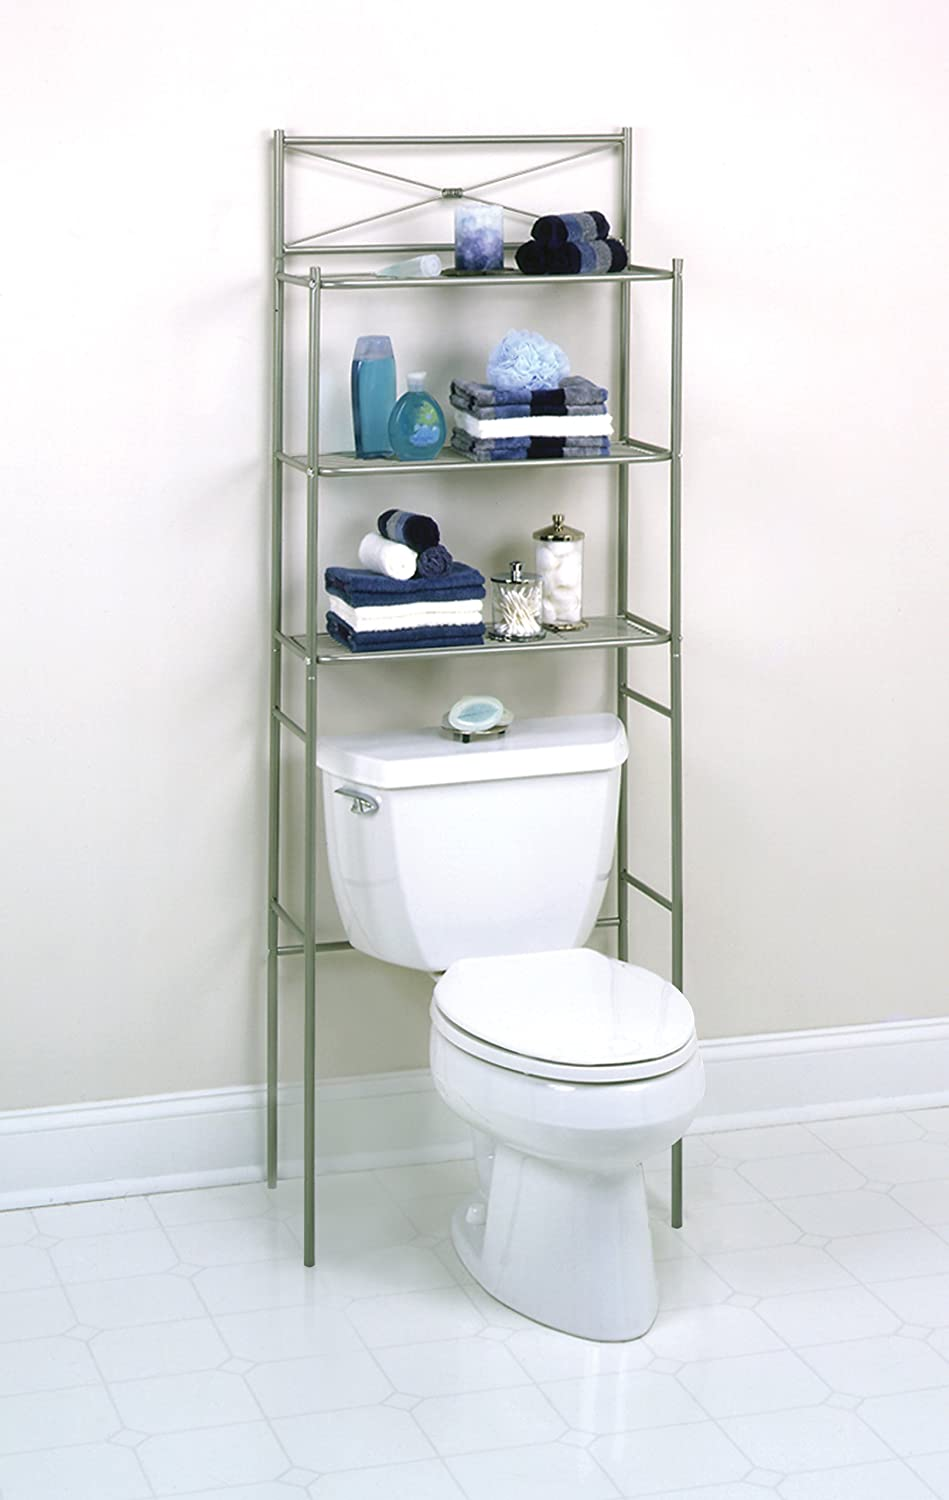 zenith bathstyles spacesaver bathroom storage over the toilet shelf pearl nickel ebay